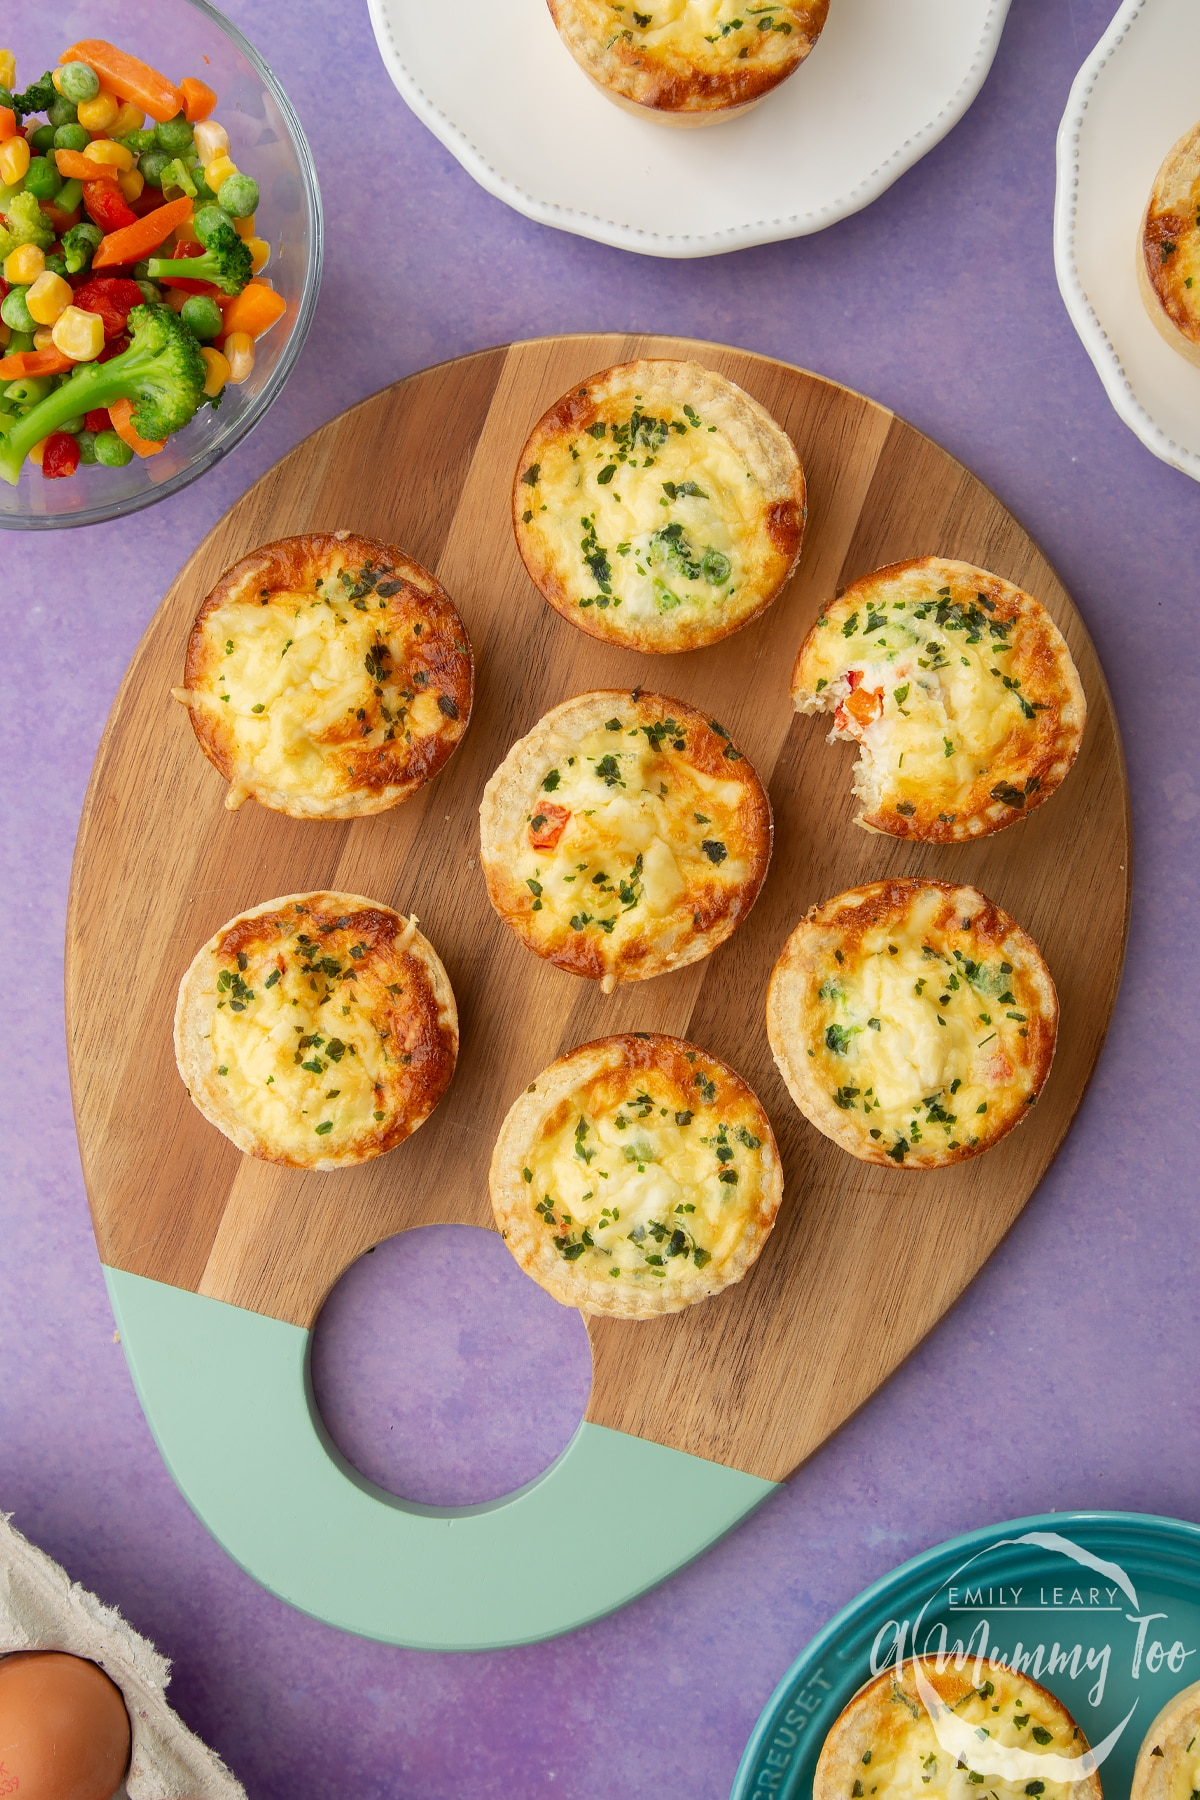 Mini vegetable quiches arranged on a wooden board. A bite has been taken out of one.